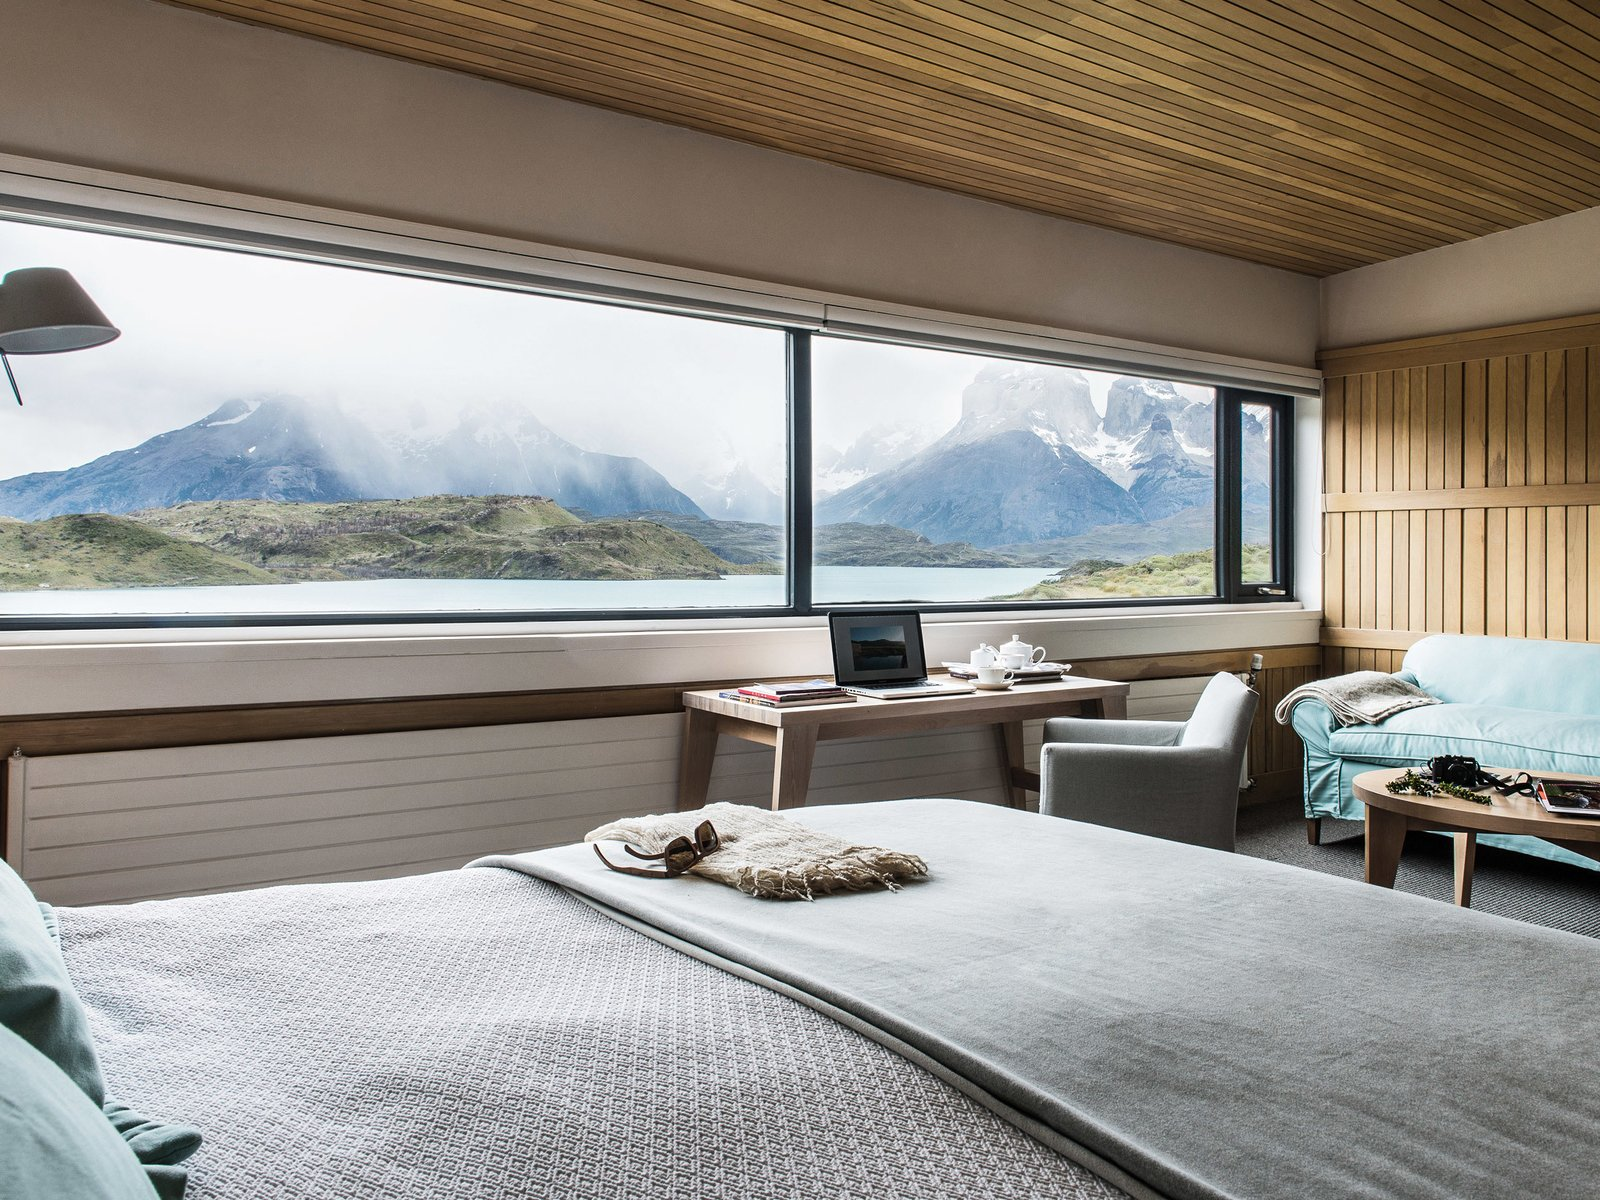 Photo 4 of 9 in Explora Patagonia Hotel – Your New Bucket List Addition